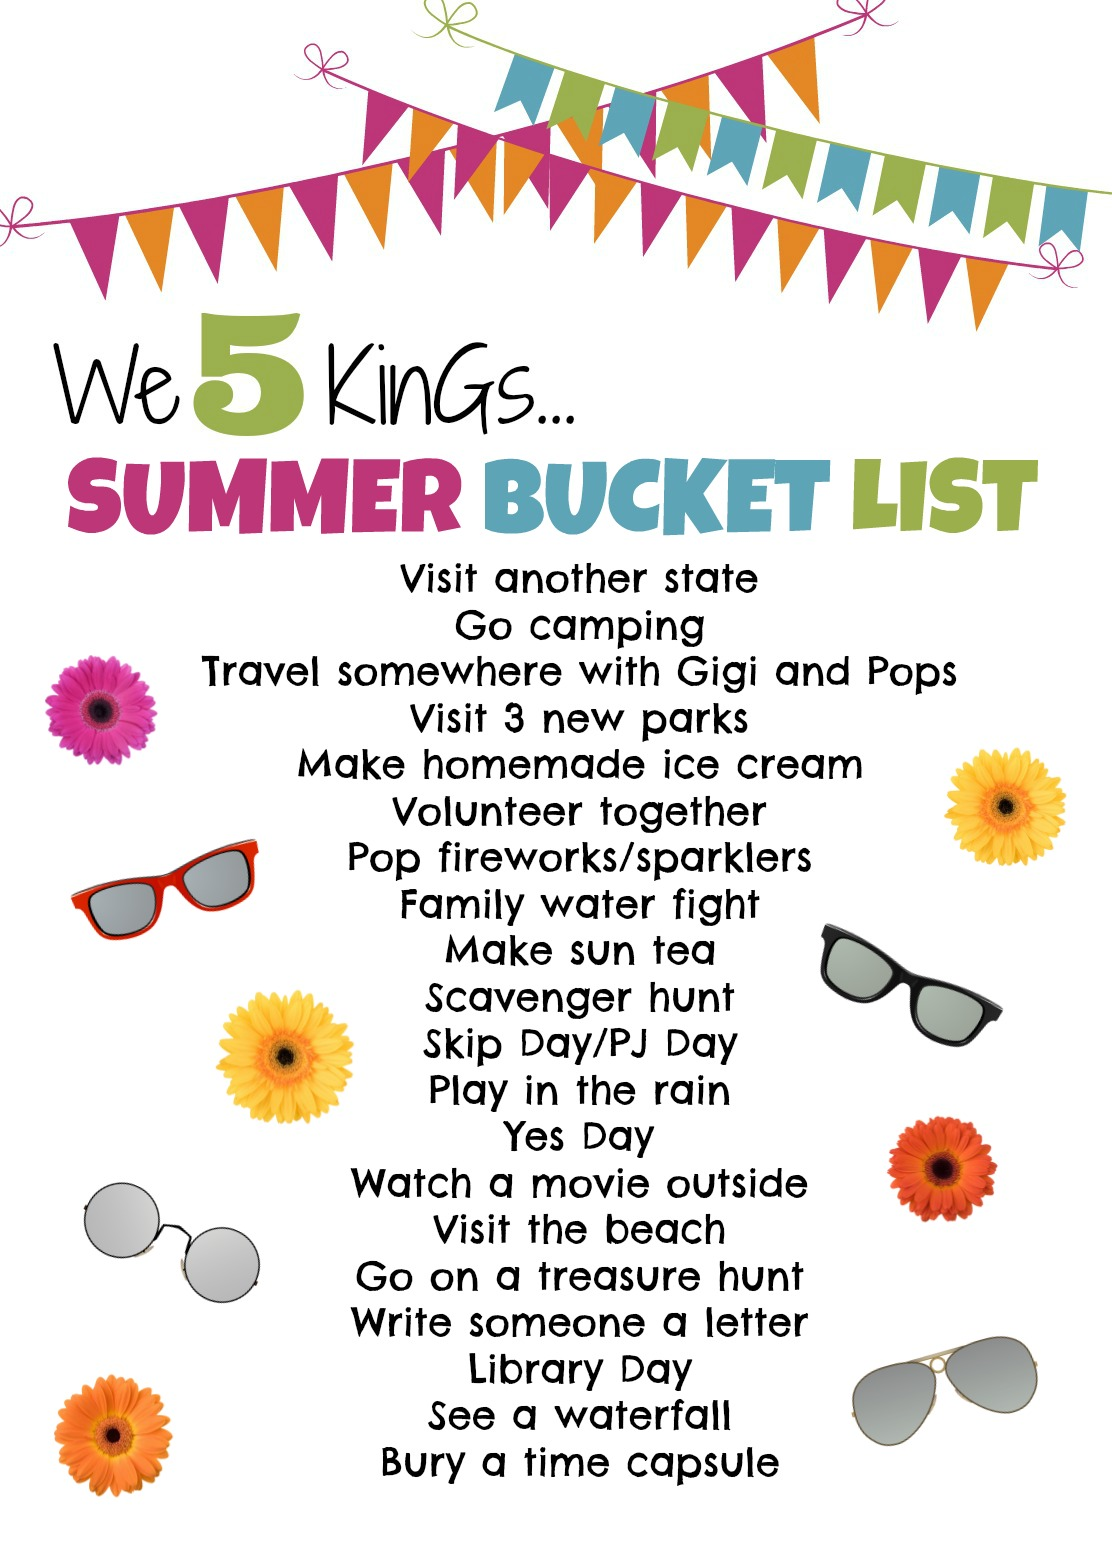 the queen of the kings spiel the beans summer bucket list